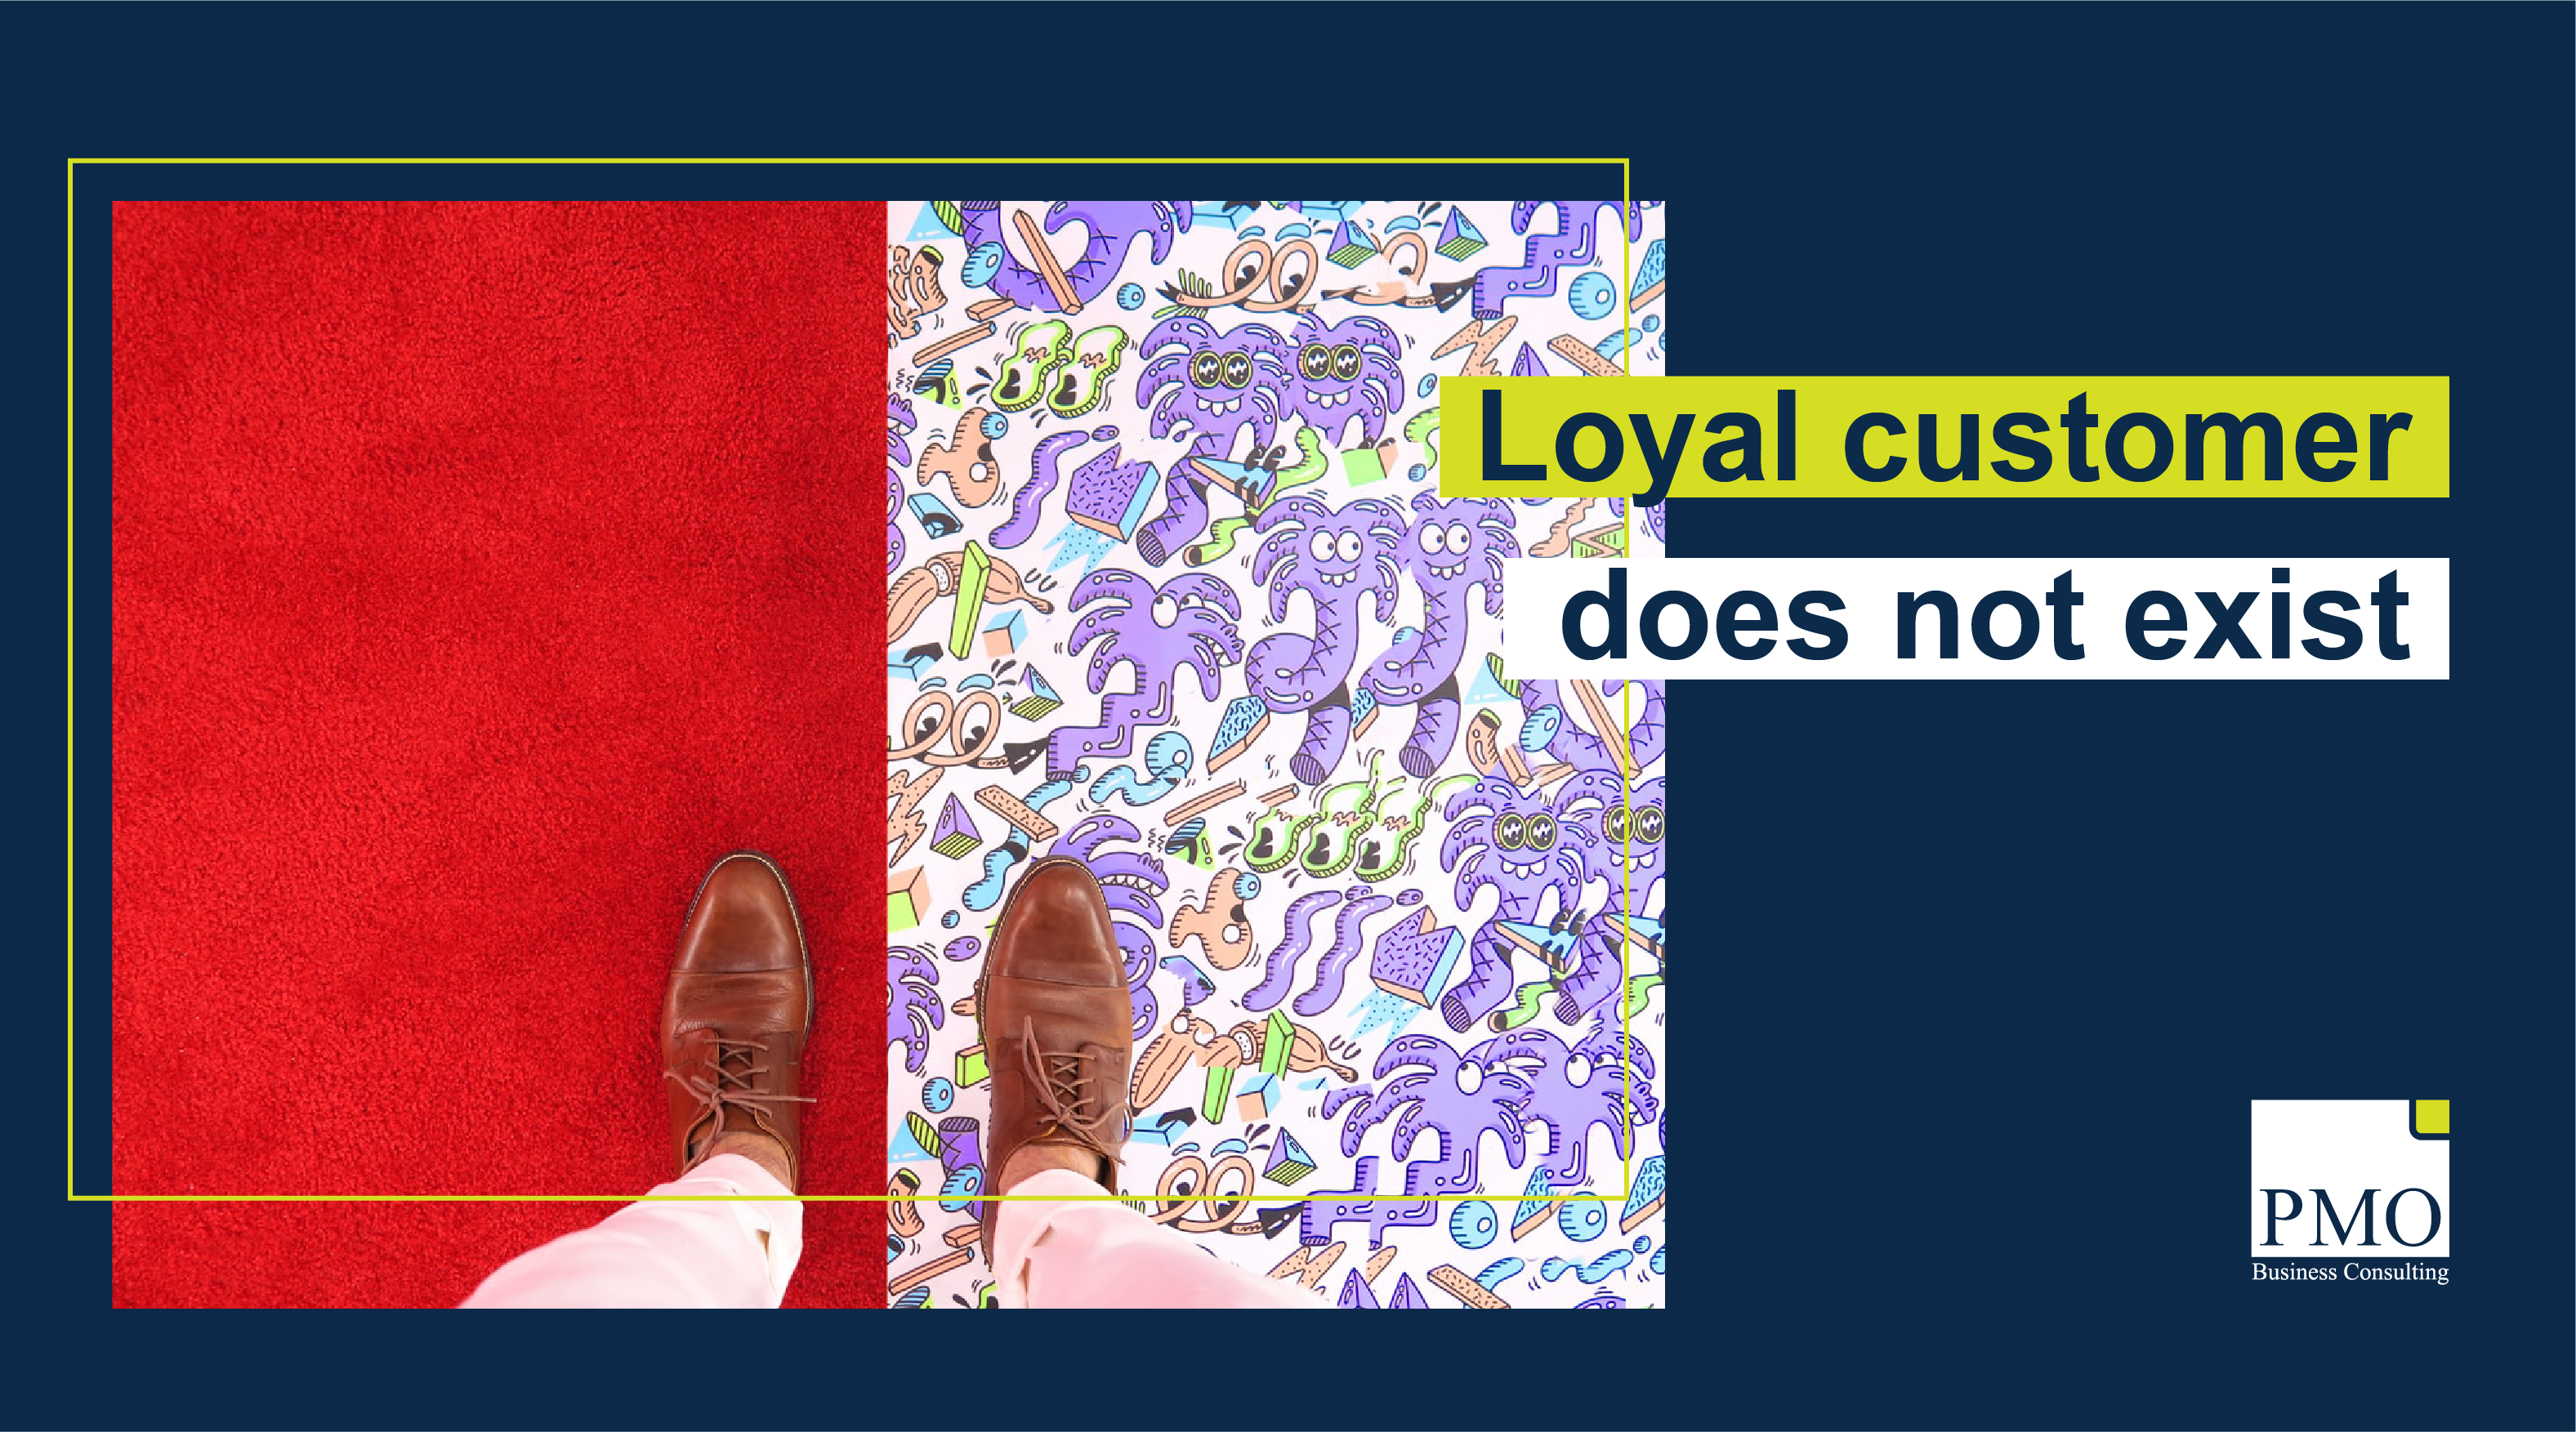 Loyal customers do not exist